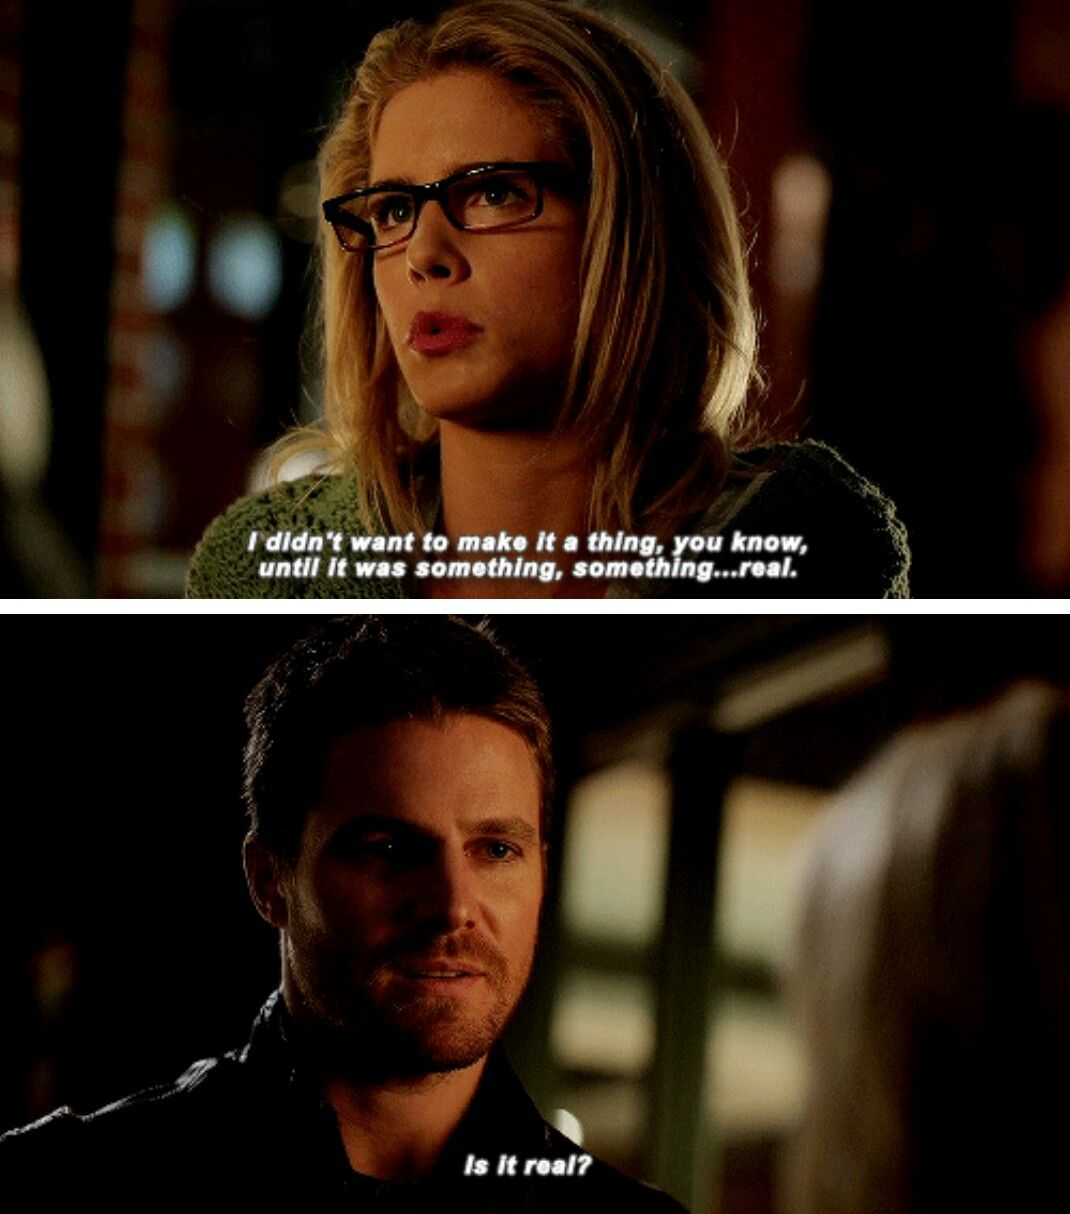 #Arrow #Olicity #Season5 #5x05